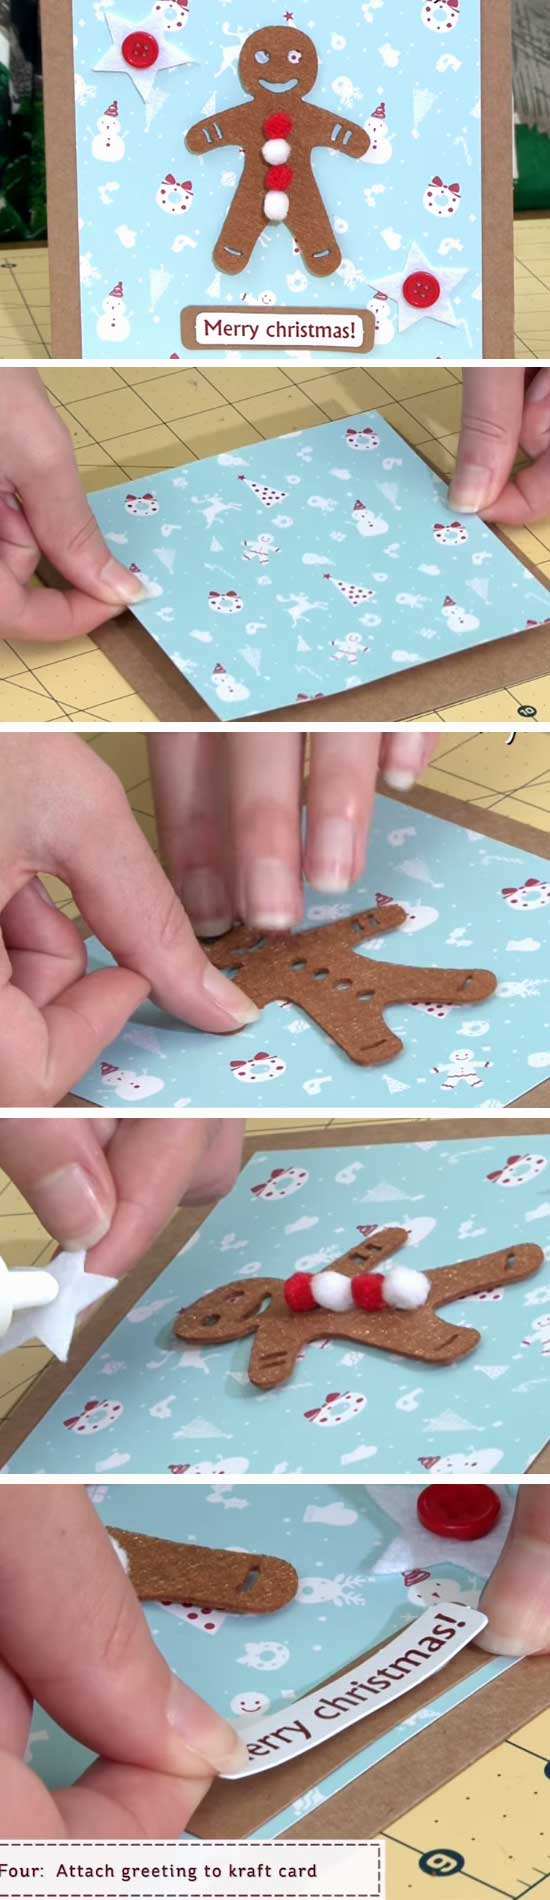 16 DIY Ideas and Tutorials to Create Your Very Own Christmas Card